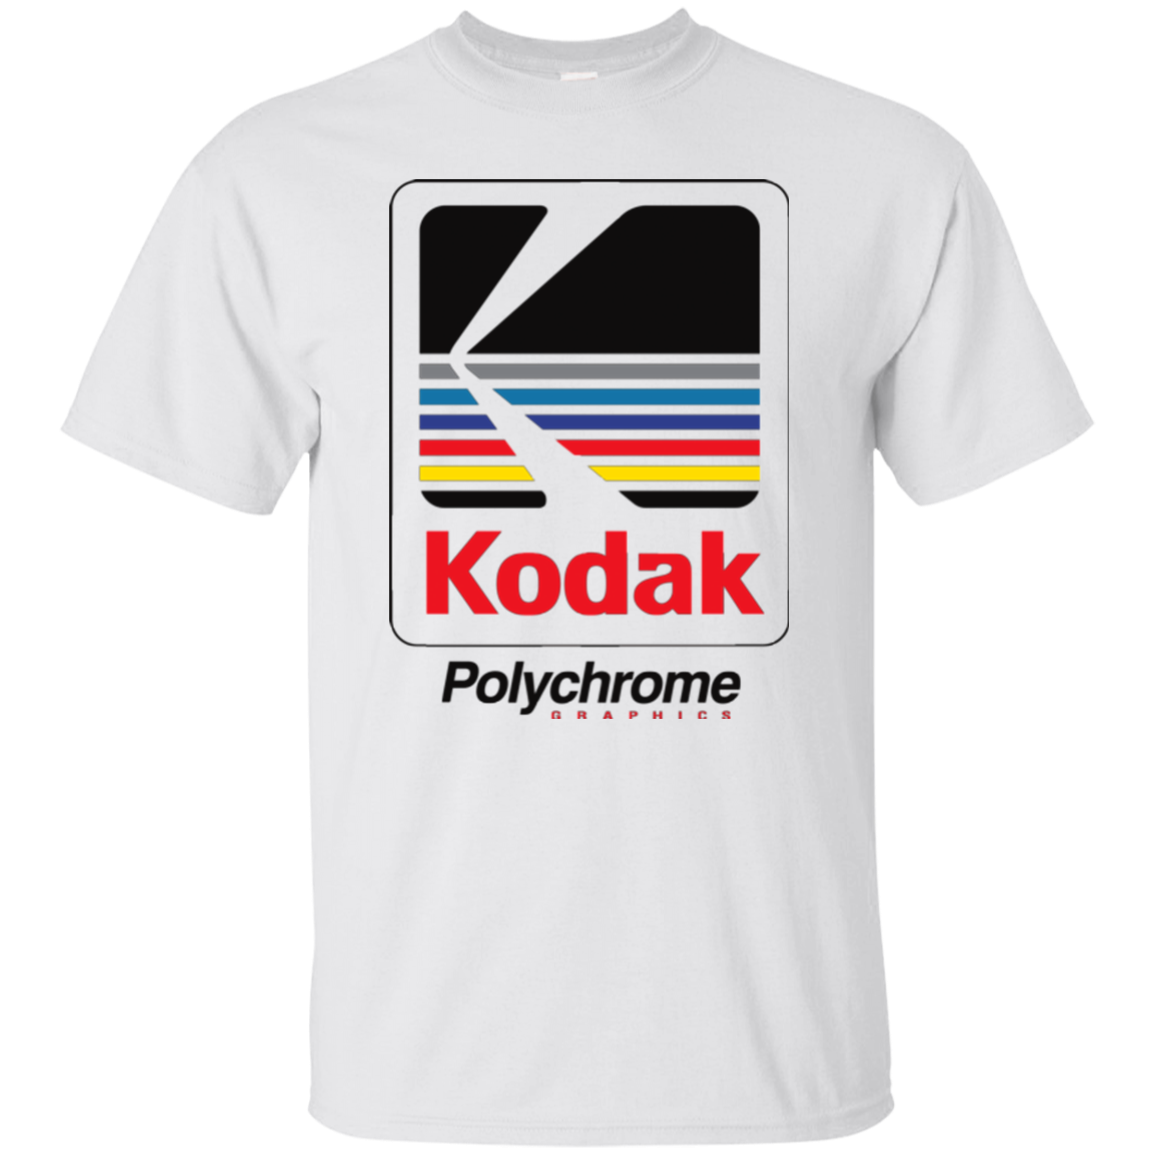 Kodak, Polychrome, Graphics, Film, Print, Photography, T-Shirt Printed T-Shirt Boys Top Tee Shirt Cotton Shirts For Men mejores fotos hechas en photoshop